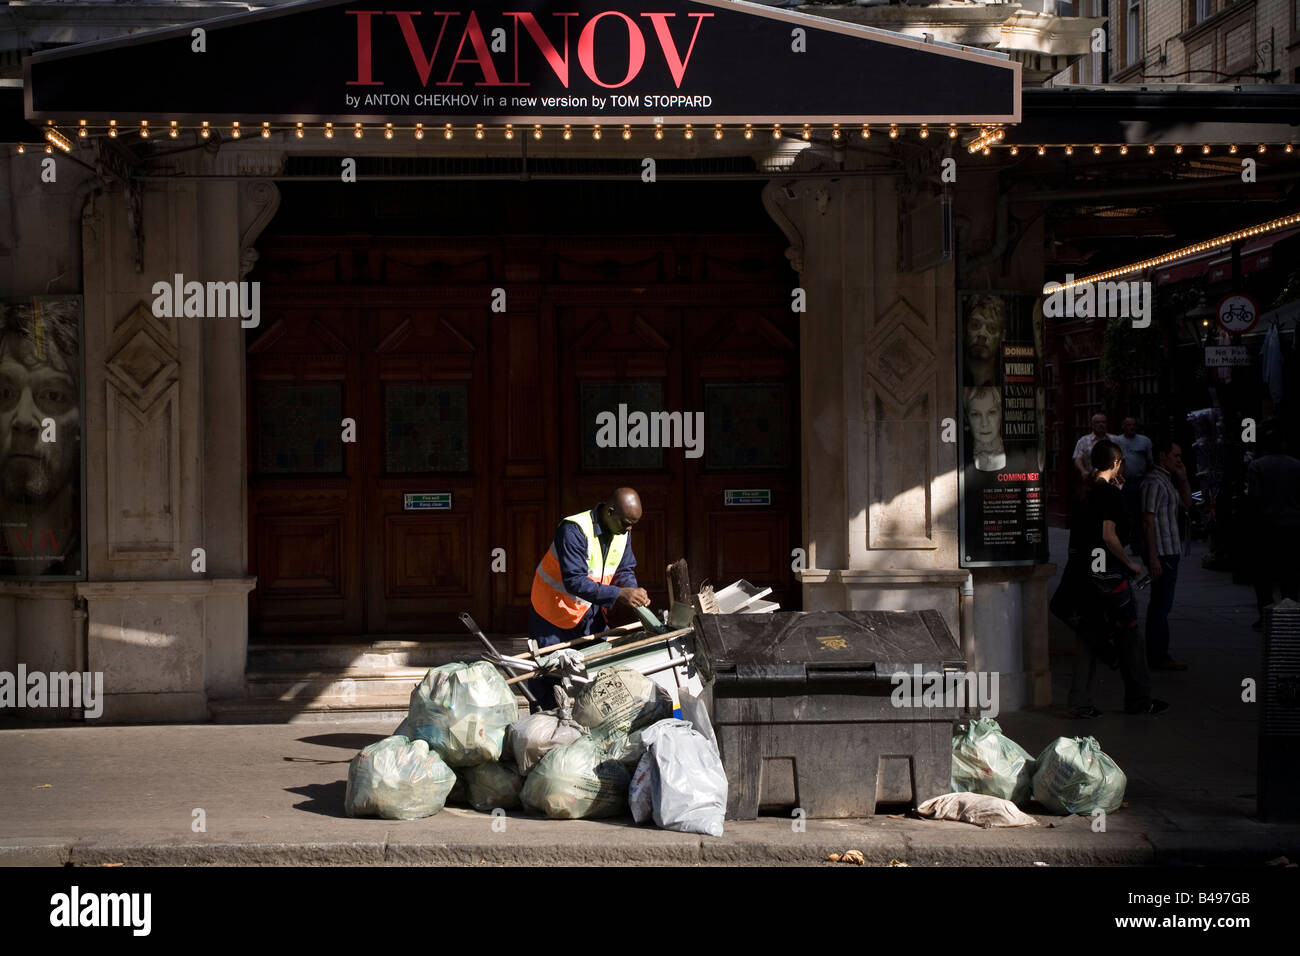 Bags of rubbish on the pavement Wyndham Theatre London West End England Britain UK - Stock Image